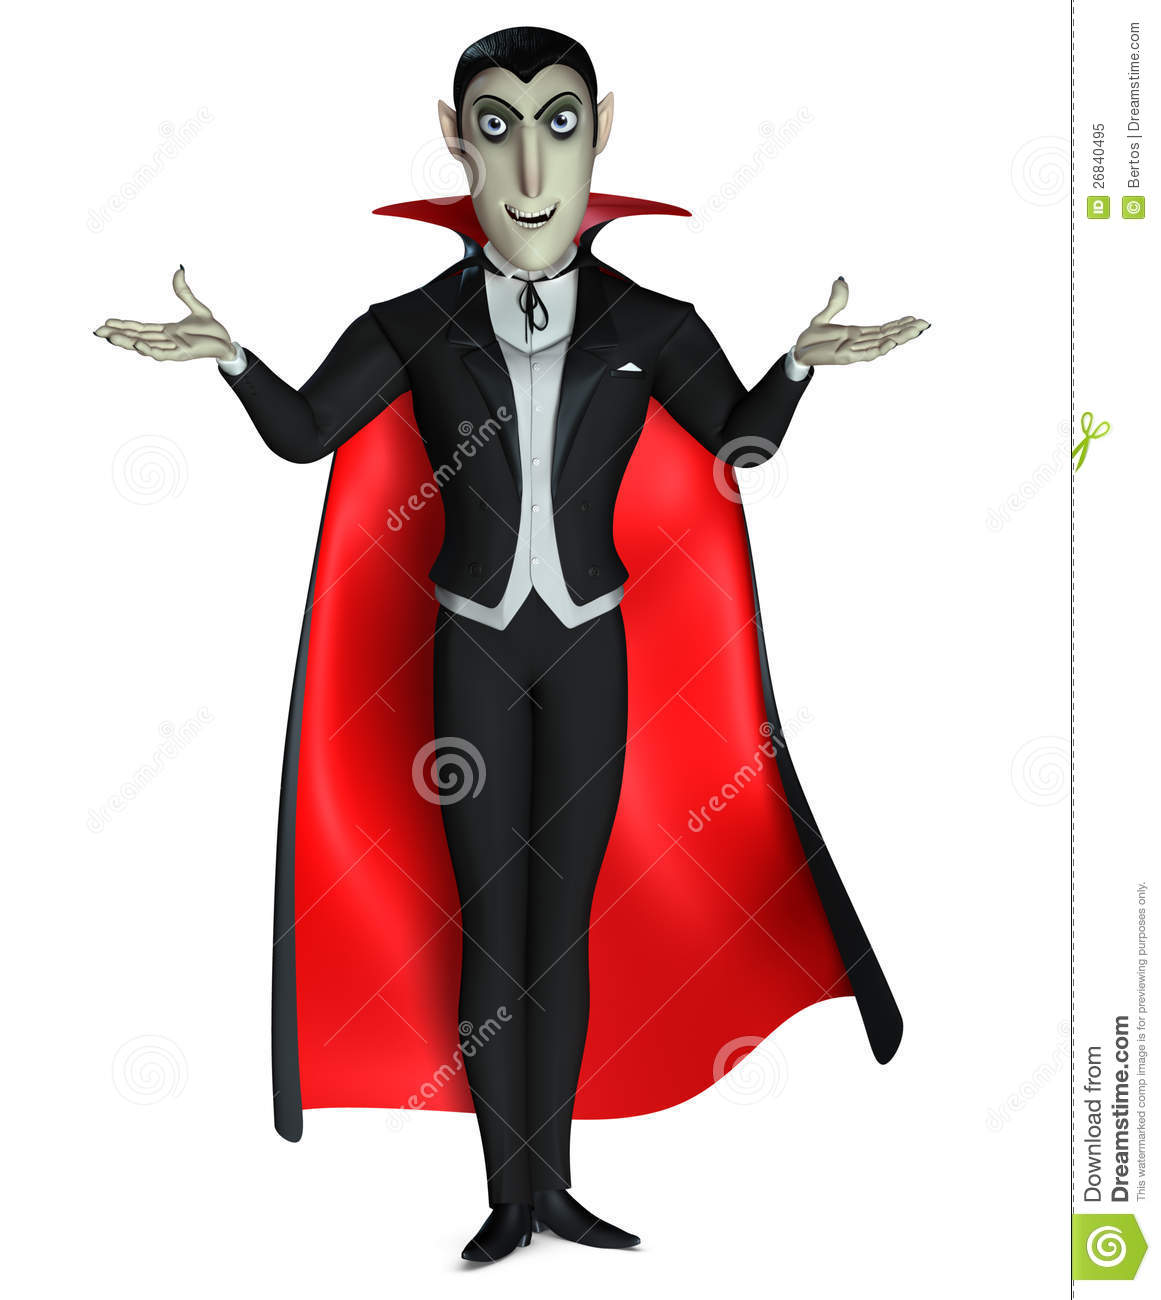 Count Dracula Royalty Free Stock Photo - Image: 26840495